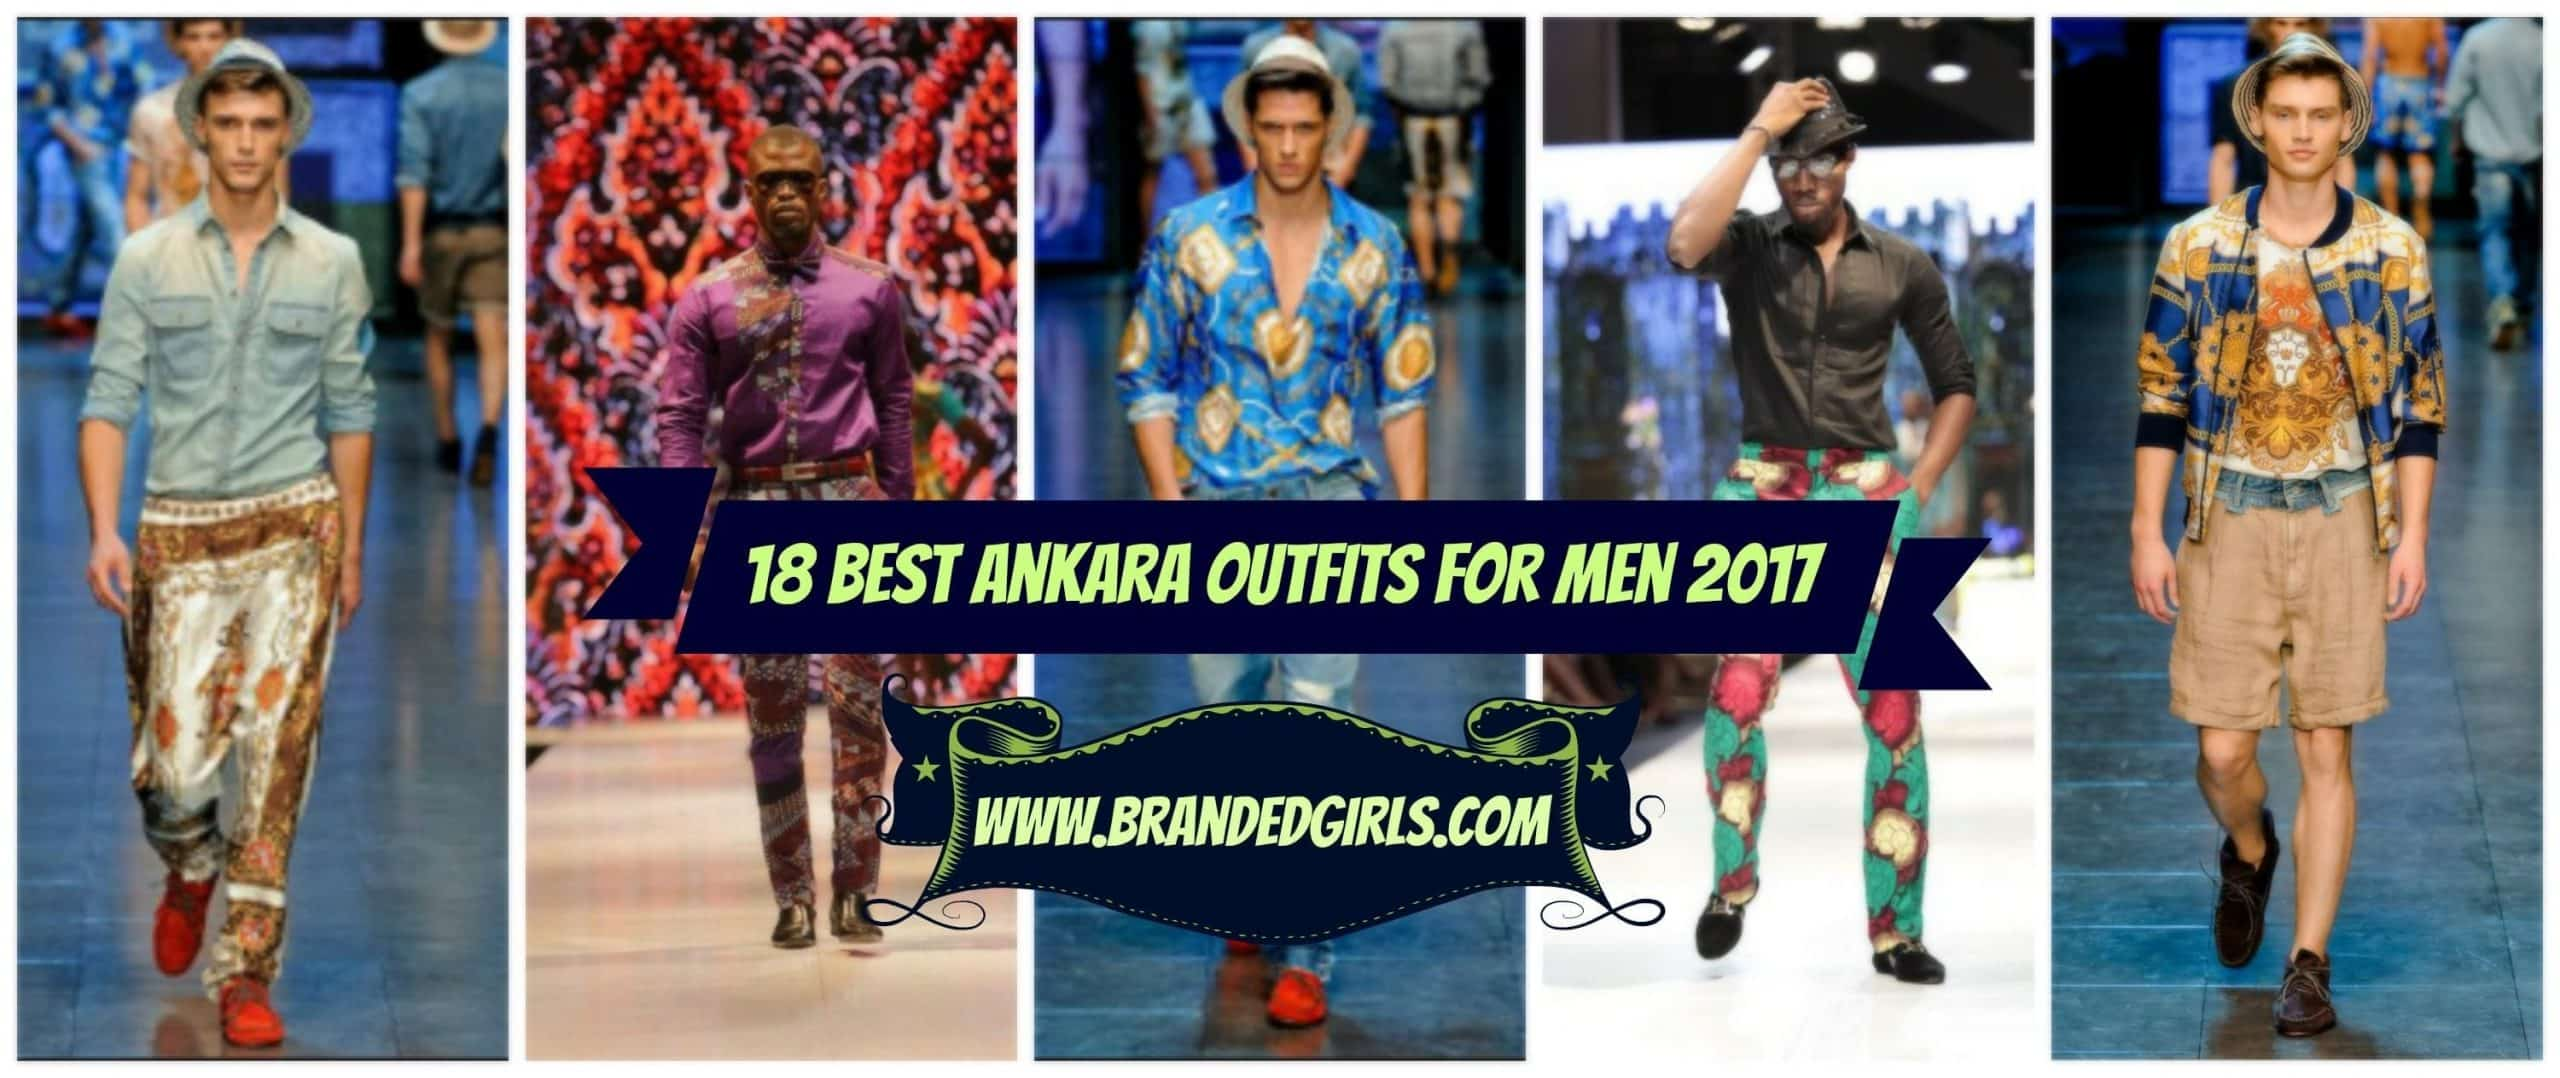 Ankara-Styles-for-Guys-18-Best-Ankara-Outfits-for-Men-2017 Ankara Styles for Guys - 18 Best Ankara Outfits for Men 2018